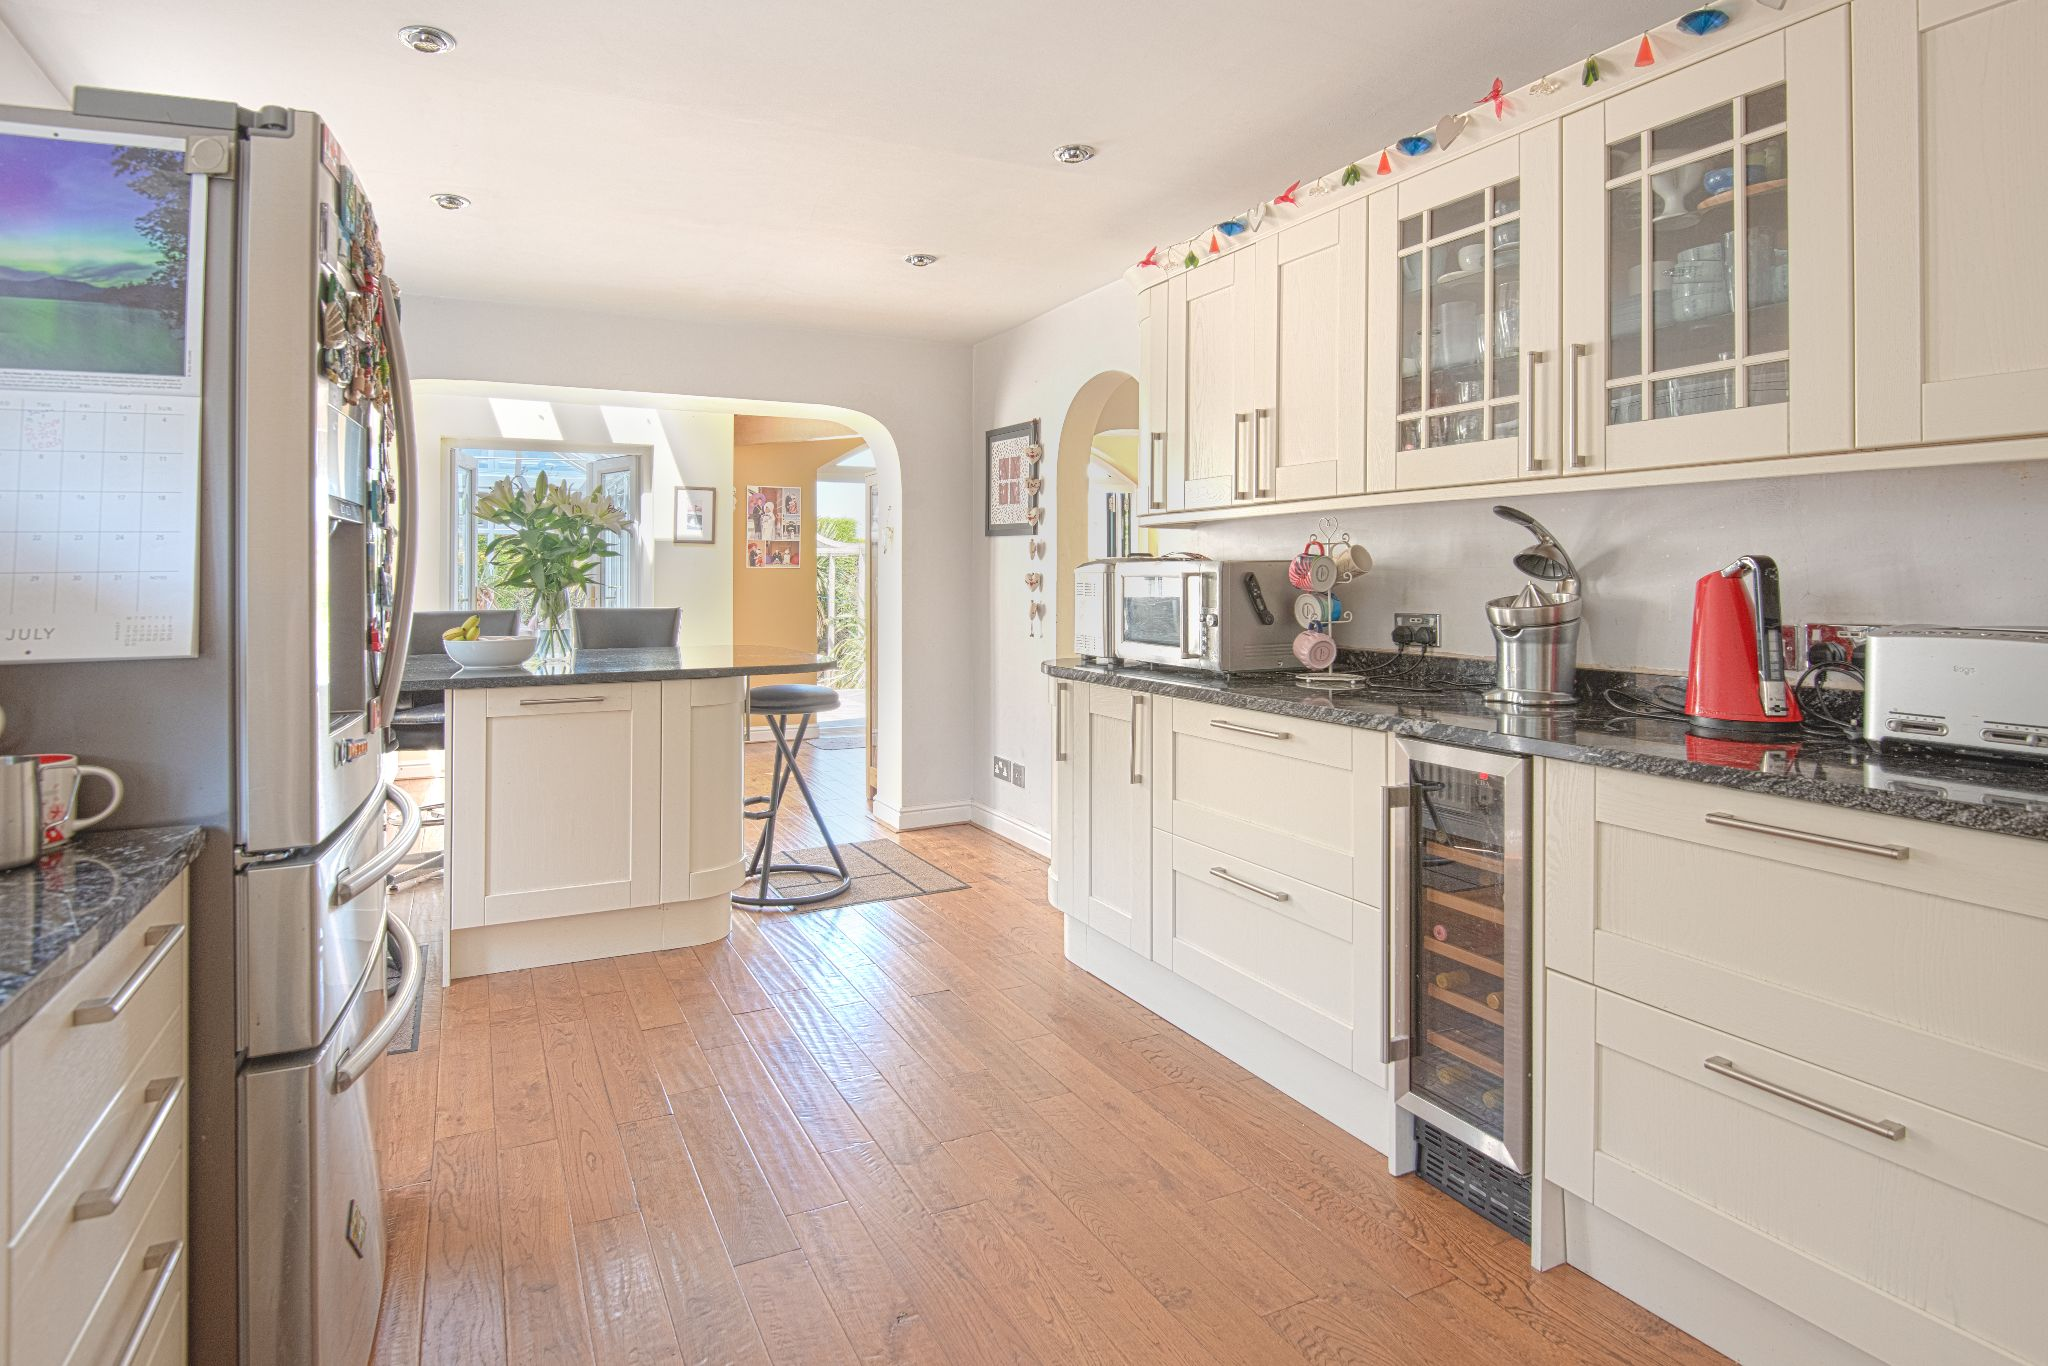 4 Bedroom Detached House For Sale - Photograph 15